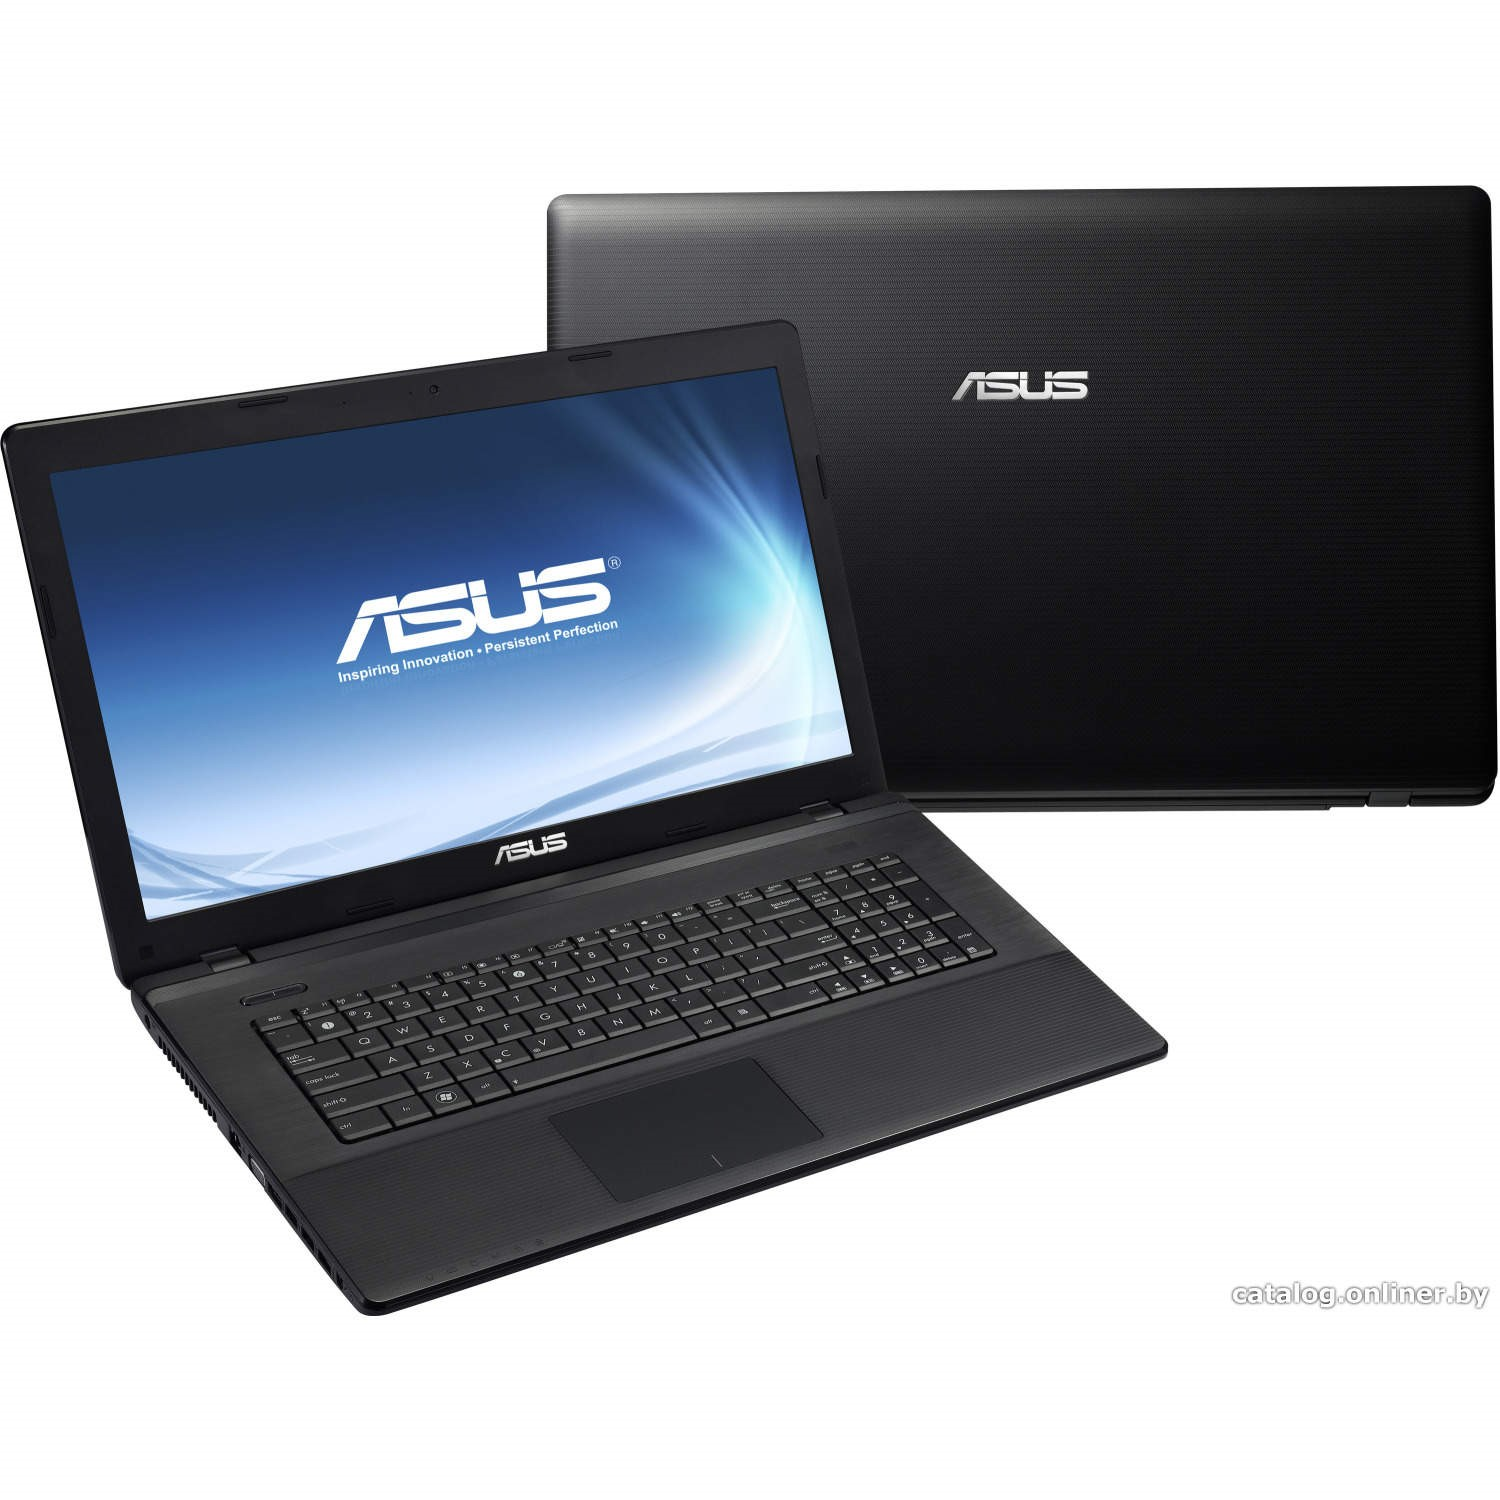 ASUS R704VC DRIVERS UPDATE